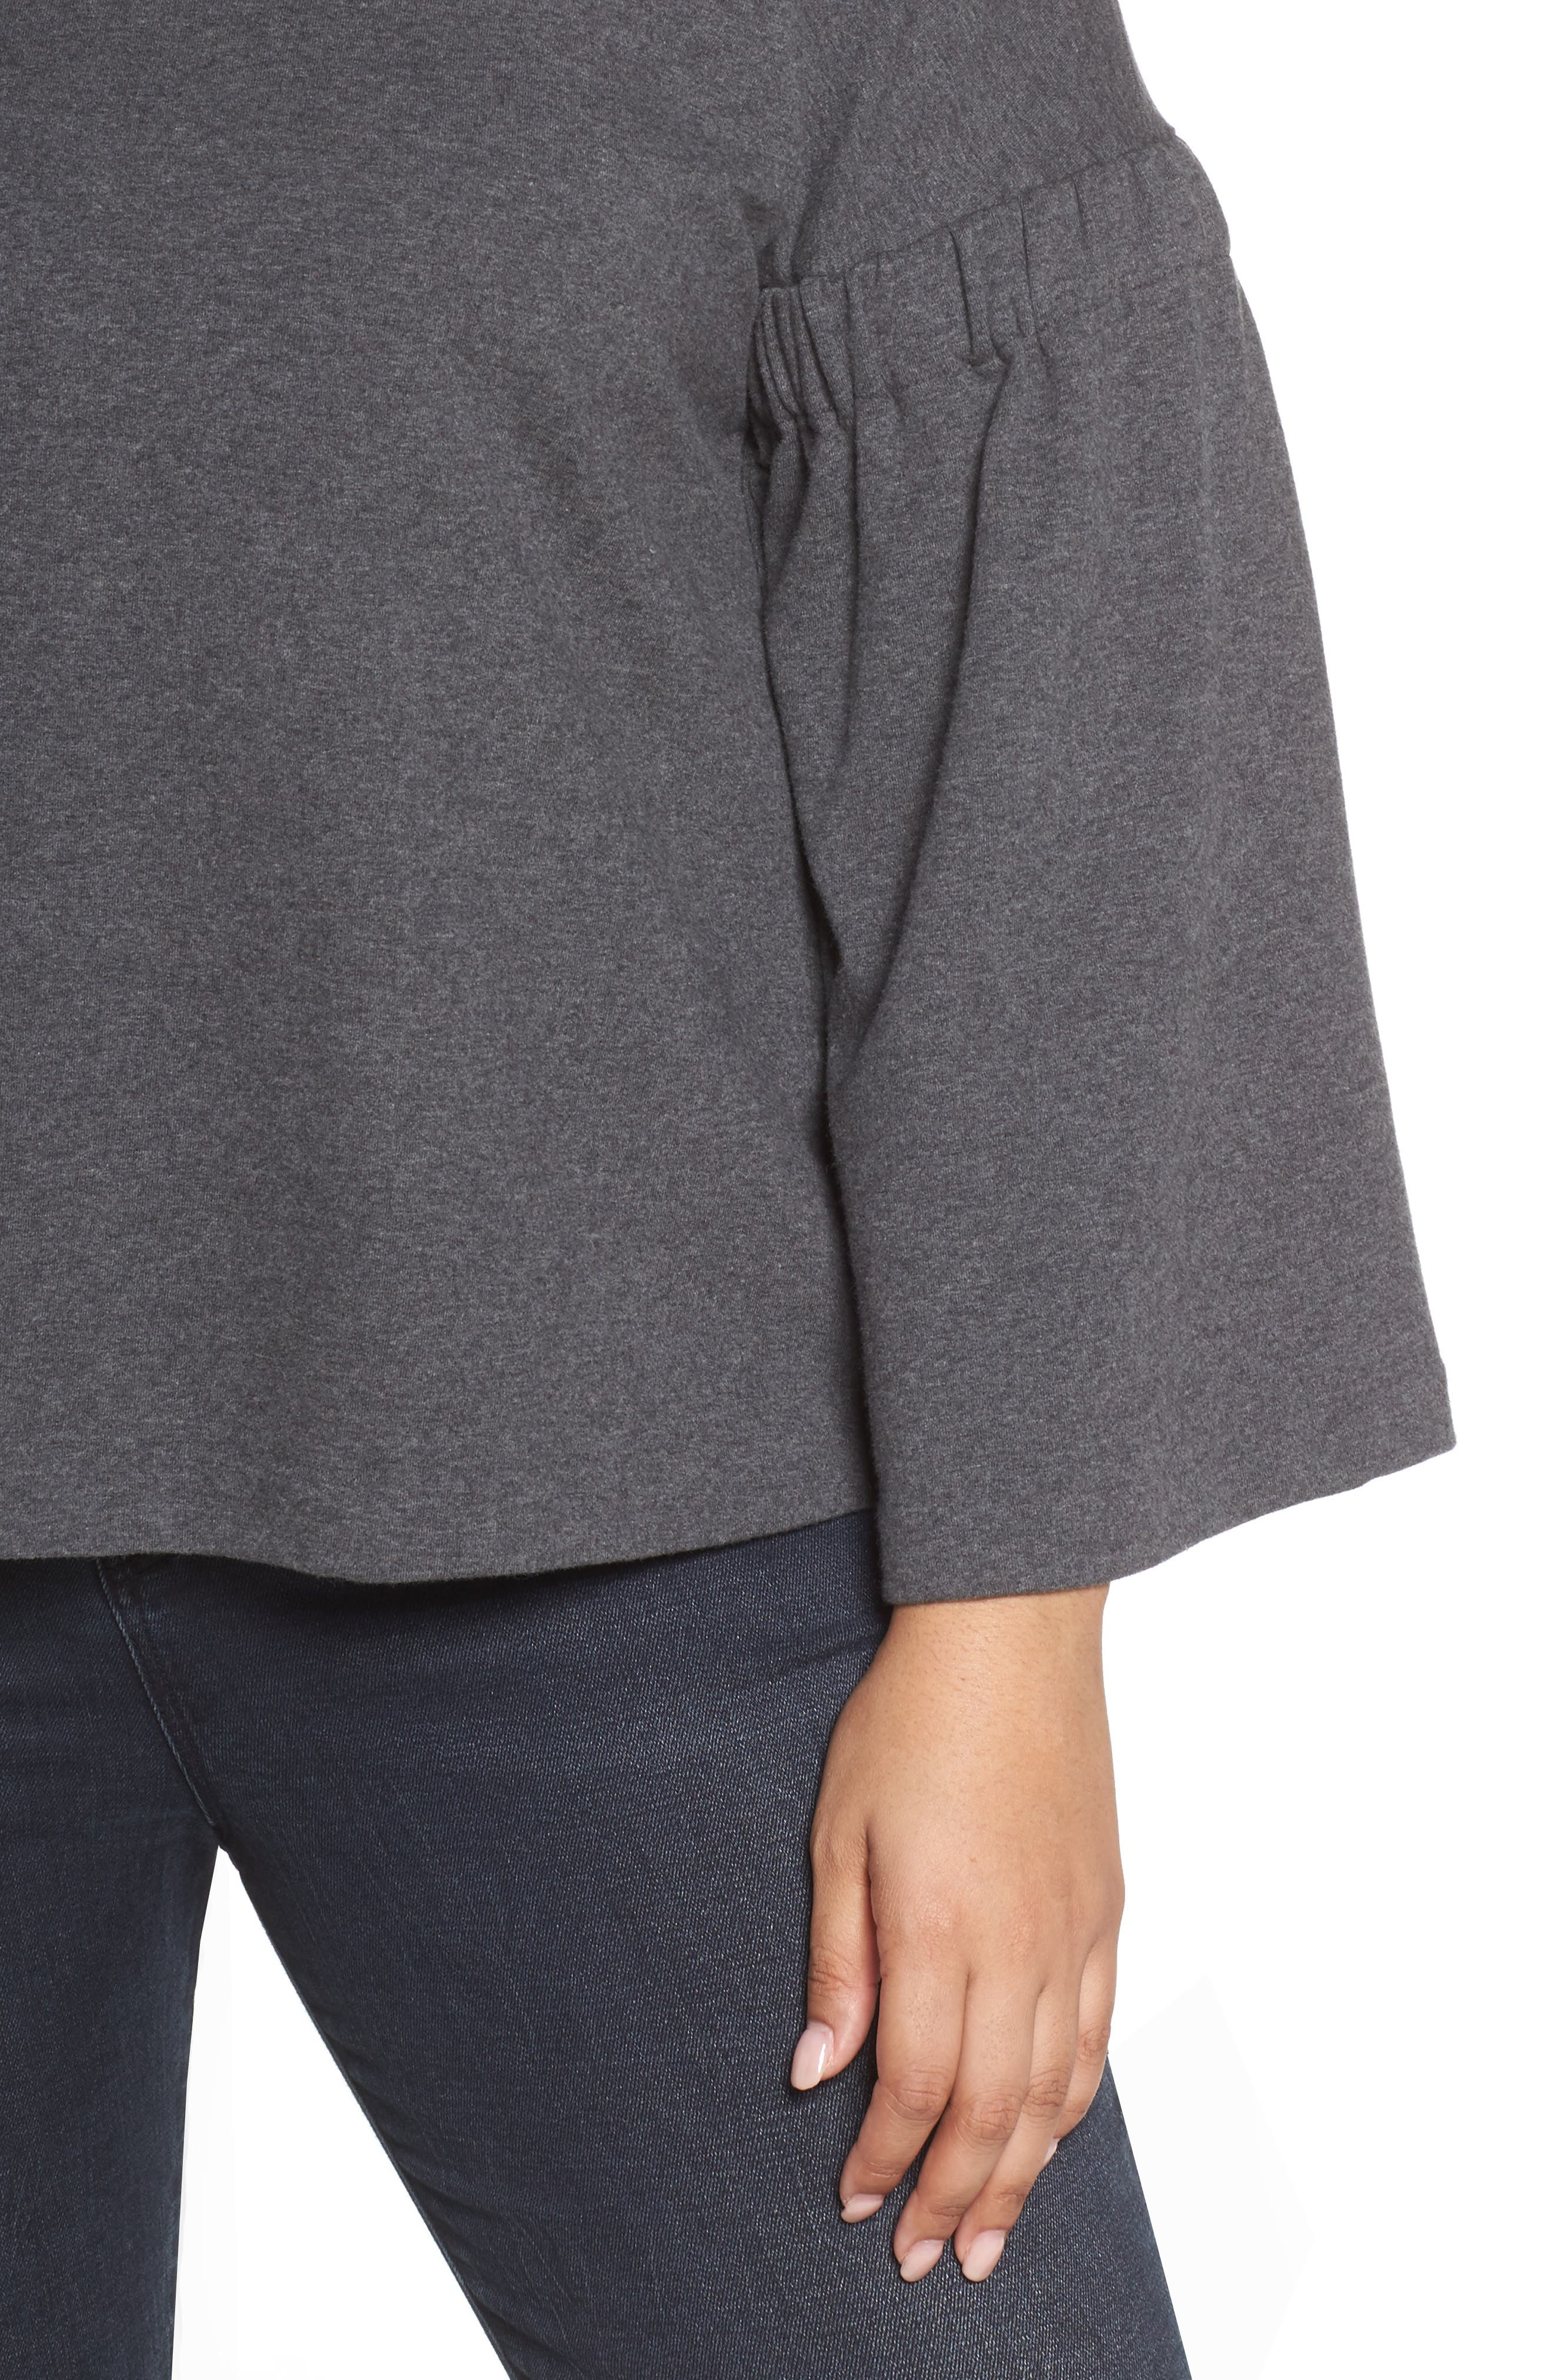 Bell Sleeve Top,                             Alternate thumbnail 4, color,                             Med Heather Grey